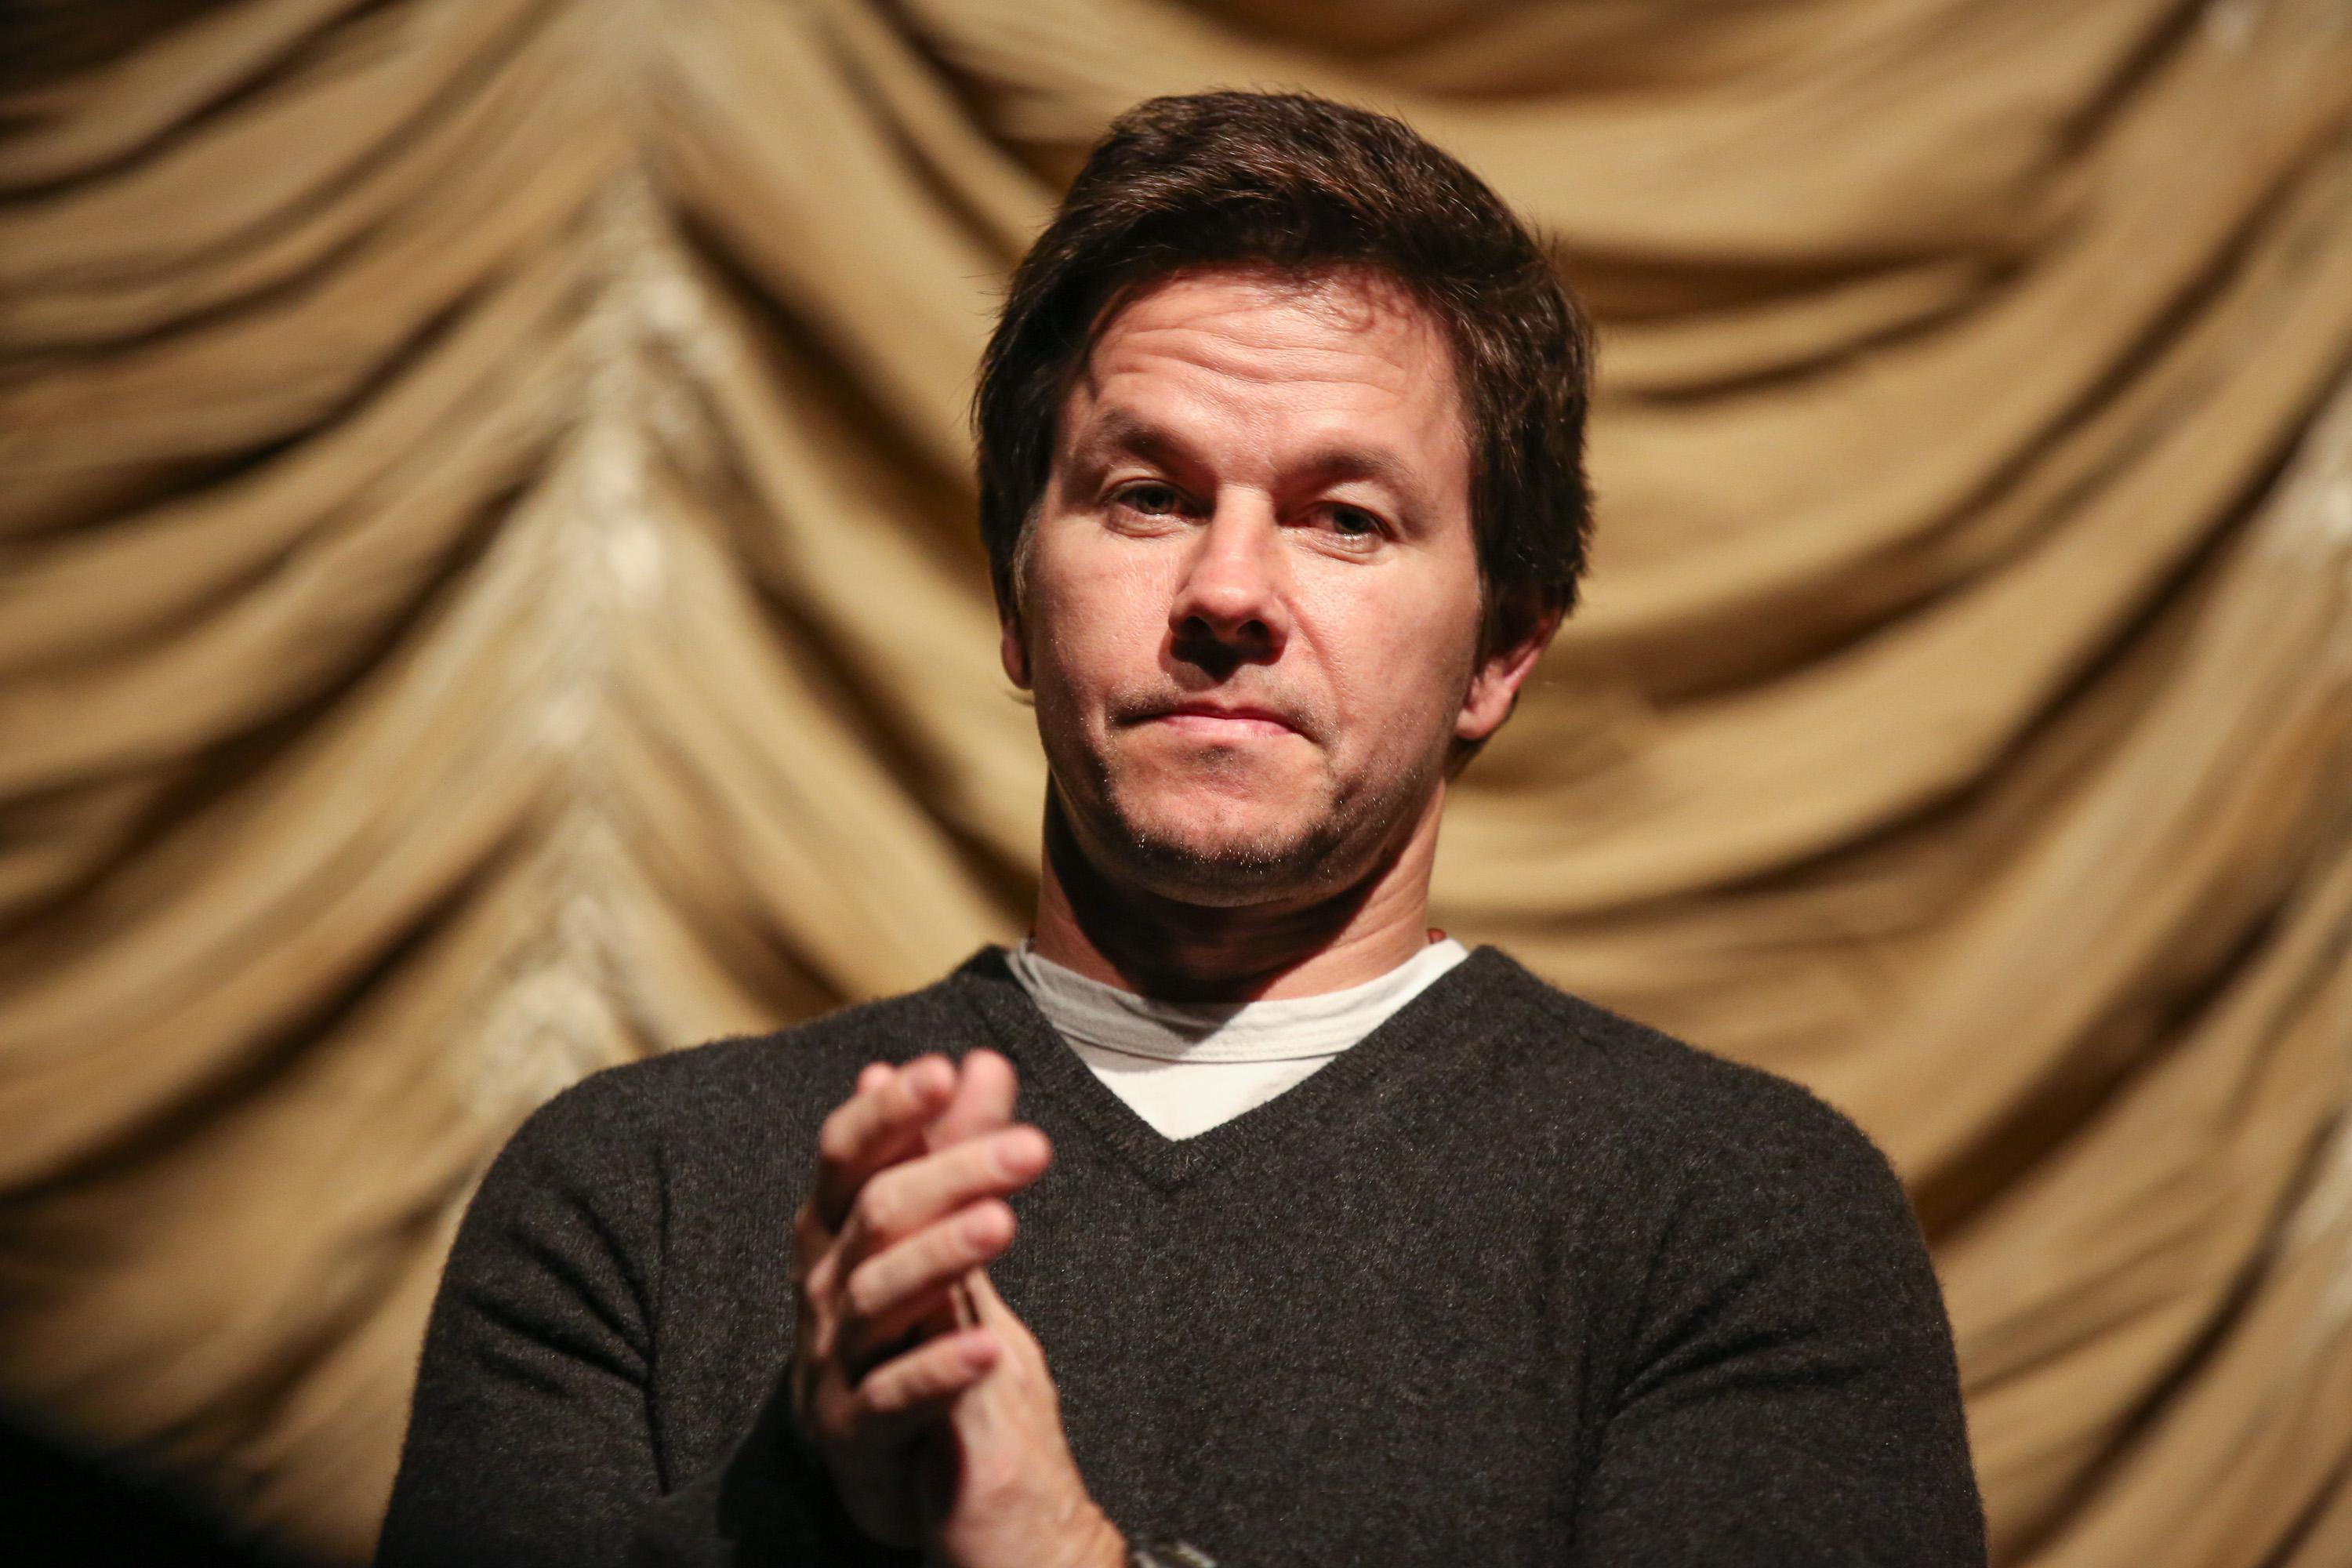 Film Independent At LACMA Screening And Q&A Of 'Lone Survivor'